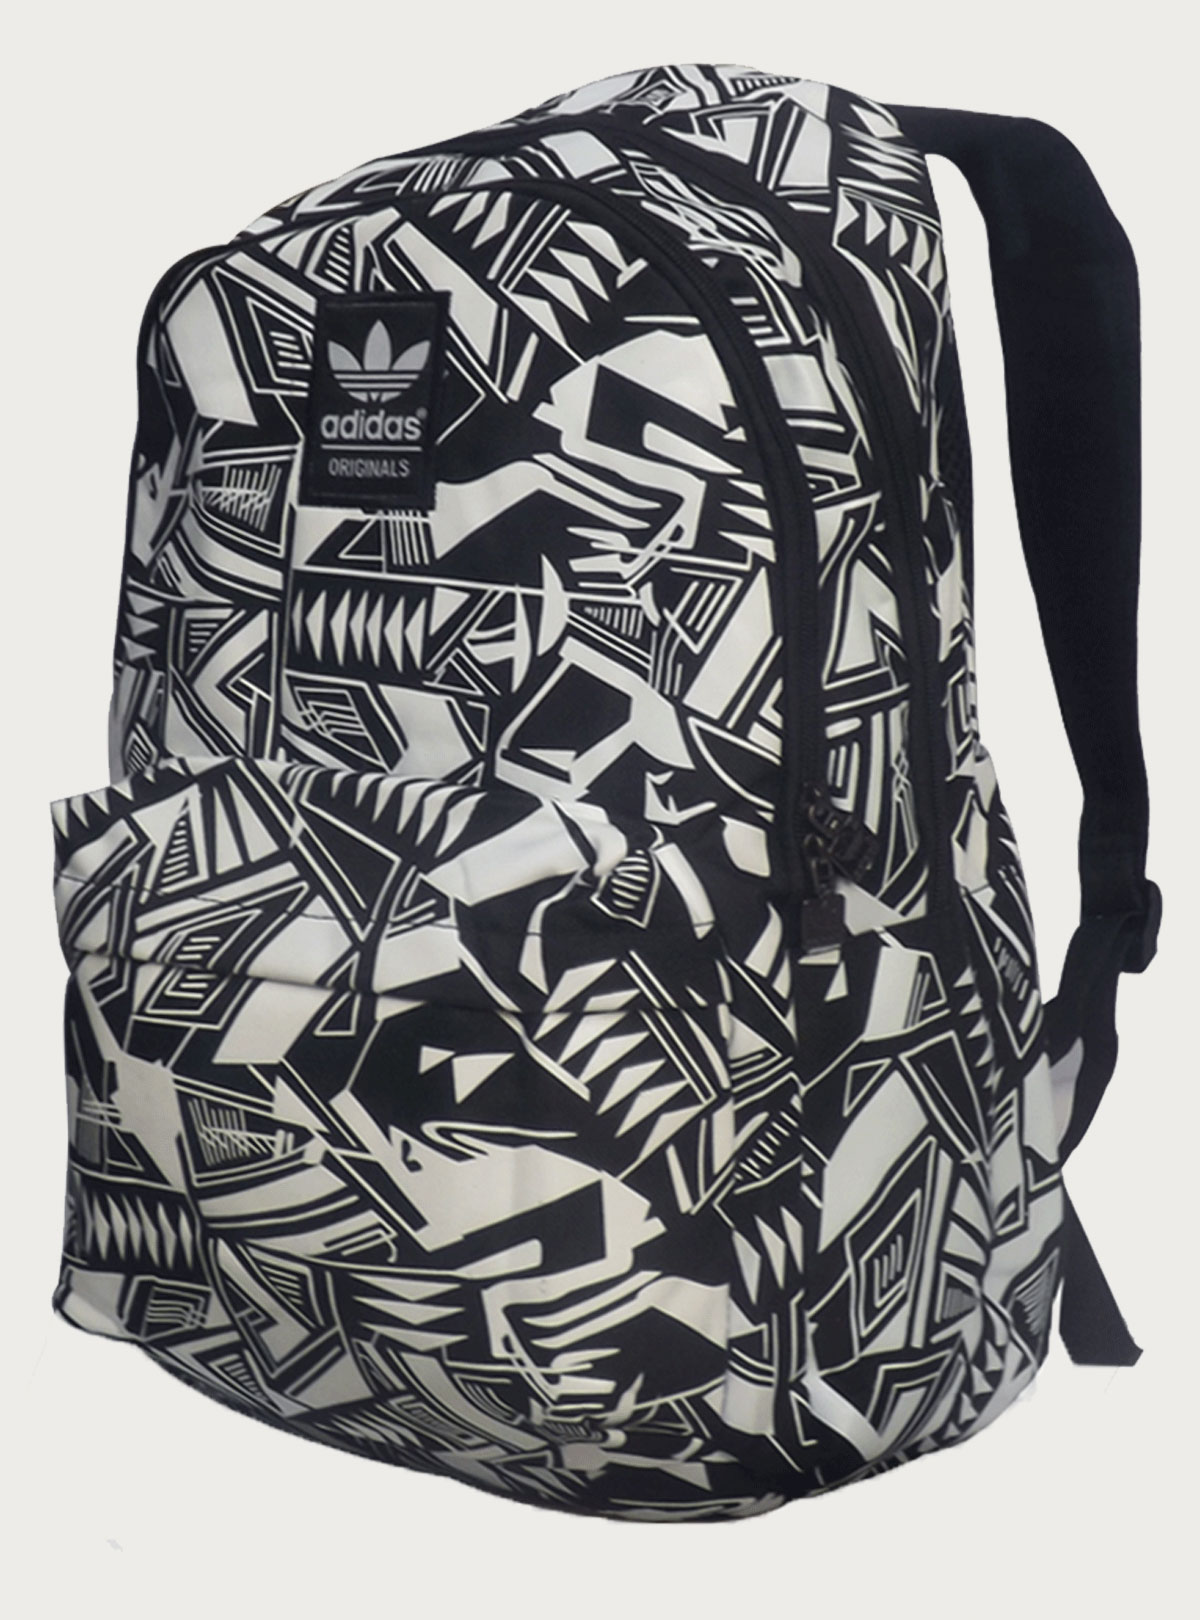 Adidas Black- White Campus Backpack